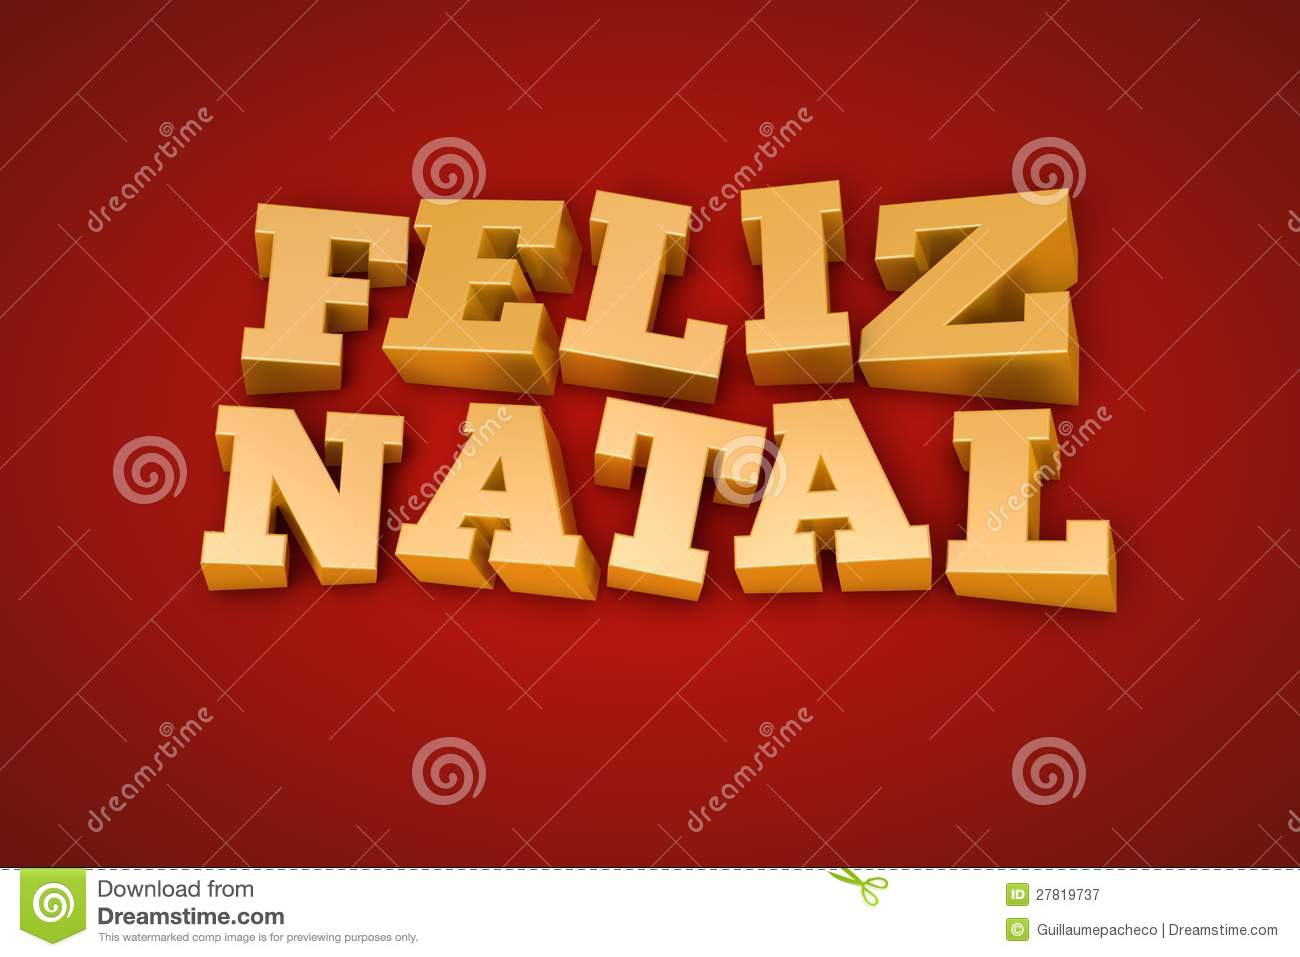 Golden Feliz Natal text on a red background